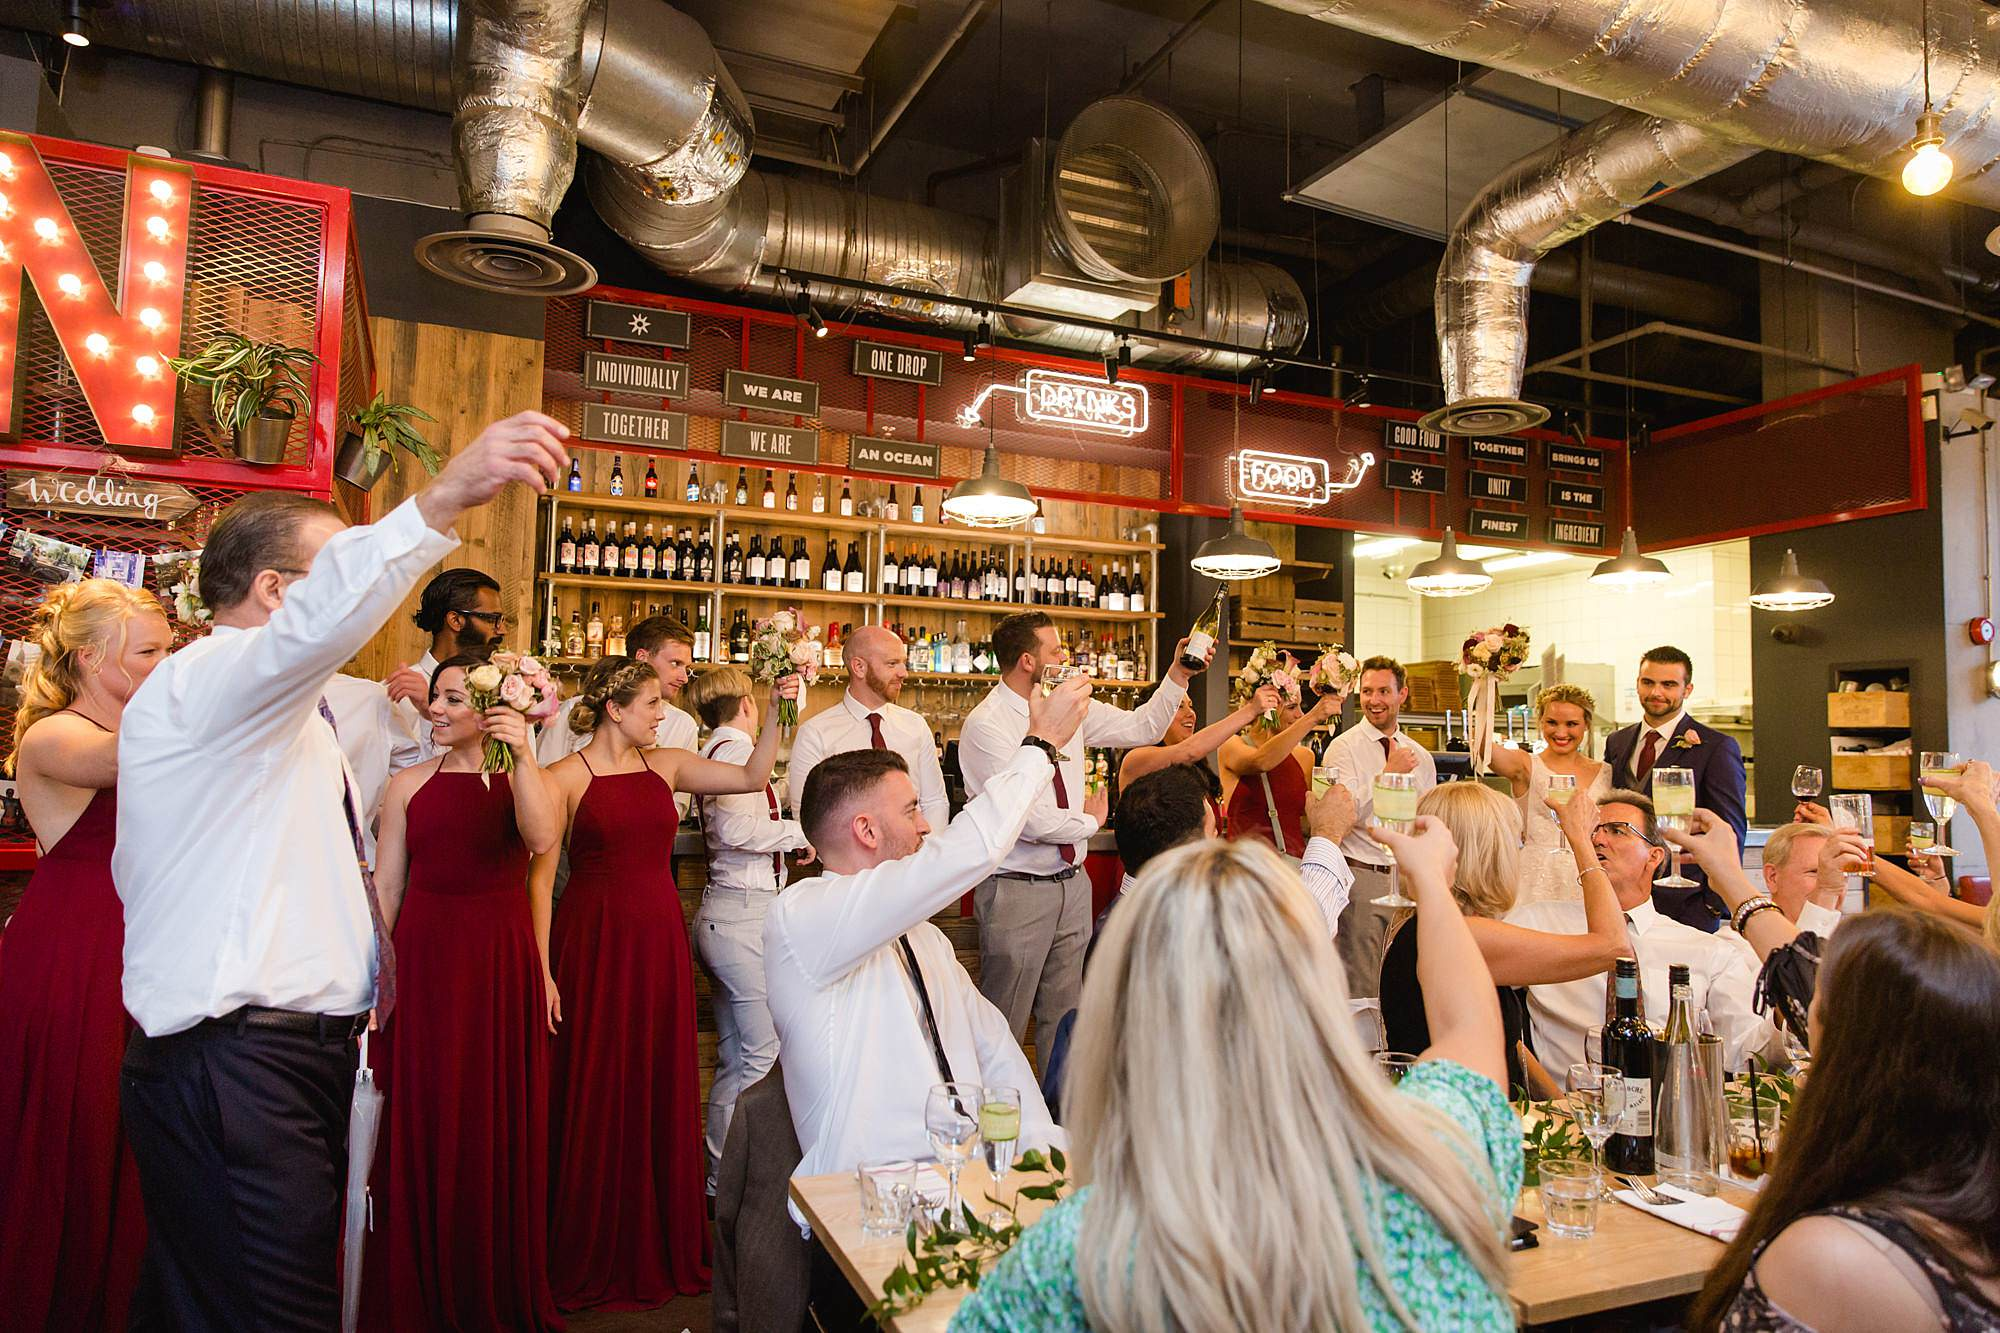 The Union Paddington wedding party toast to bride and groom